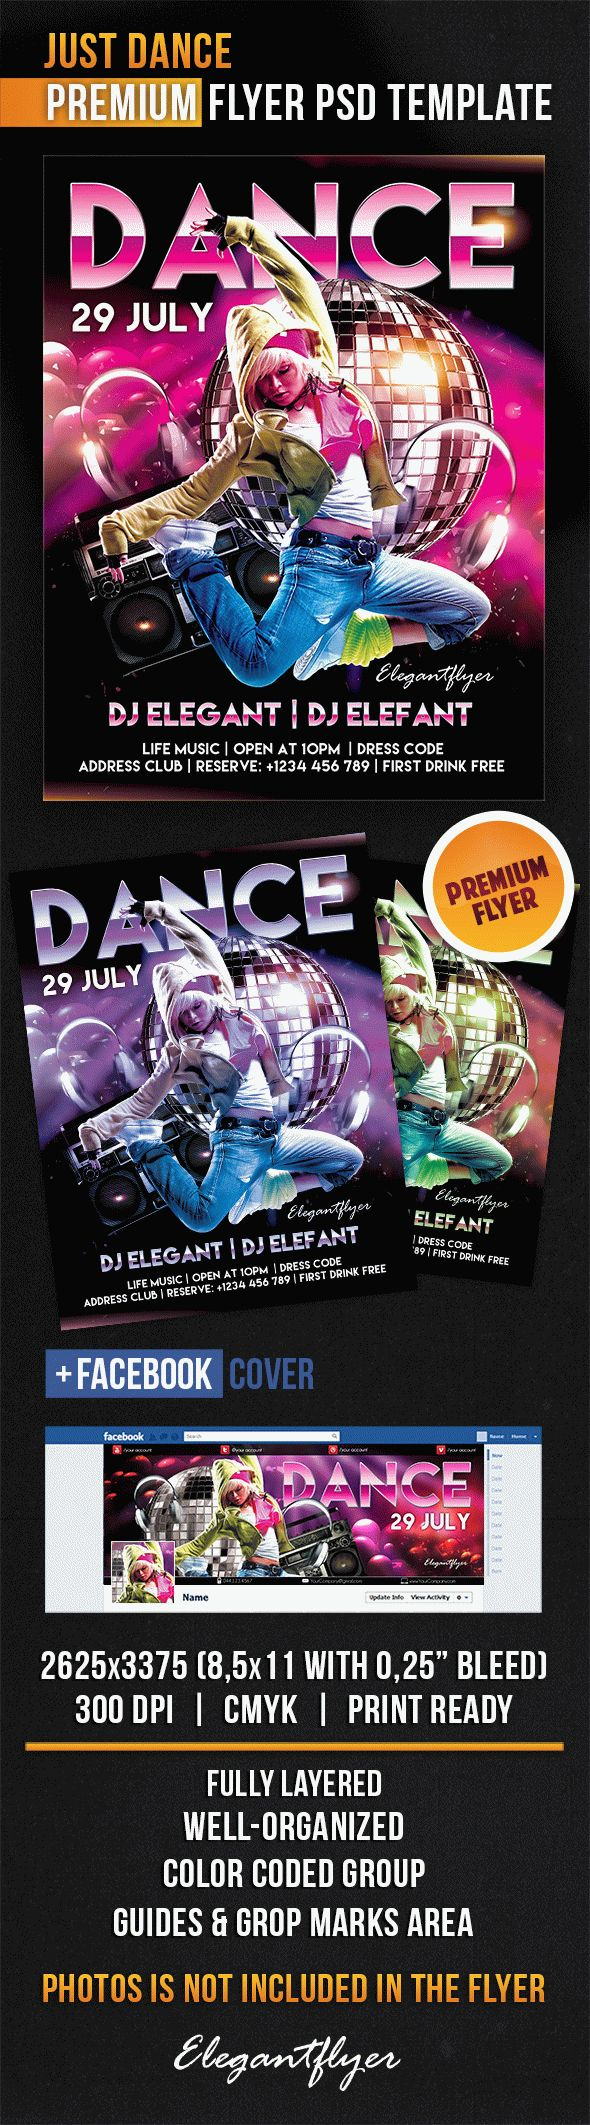 Just Dance – Flyer PSD Template + Facebook Cover